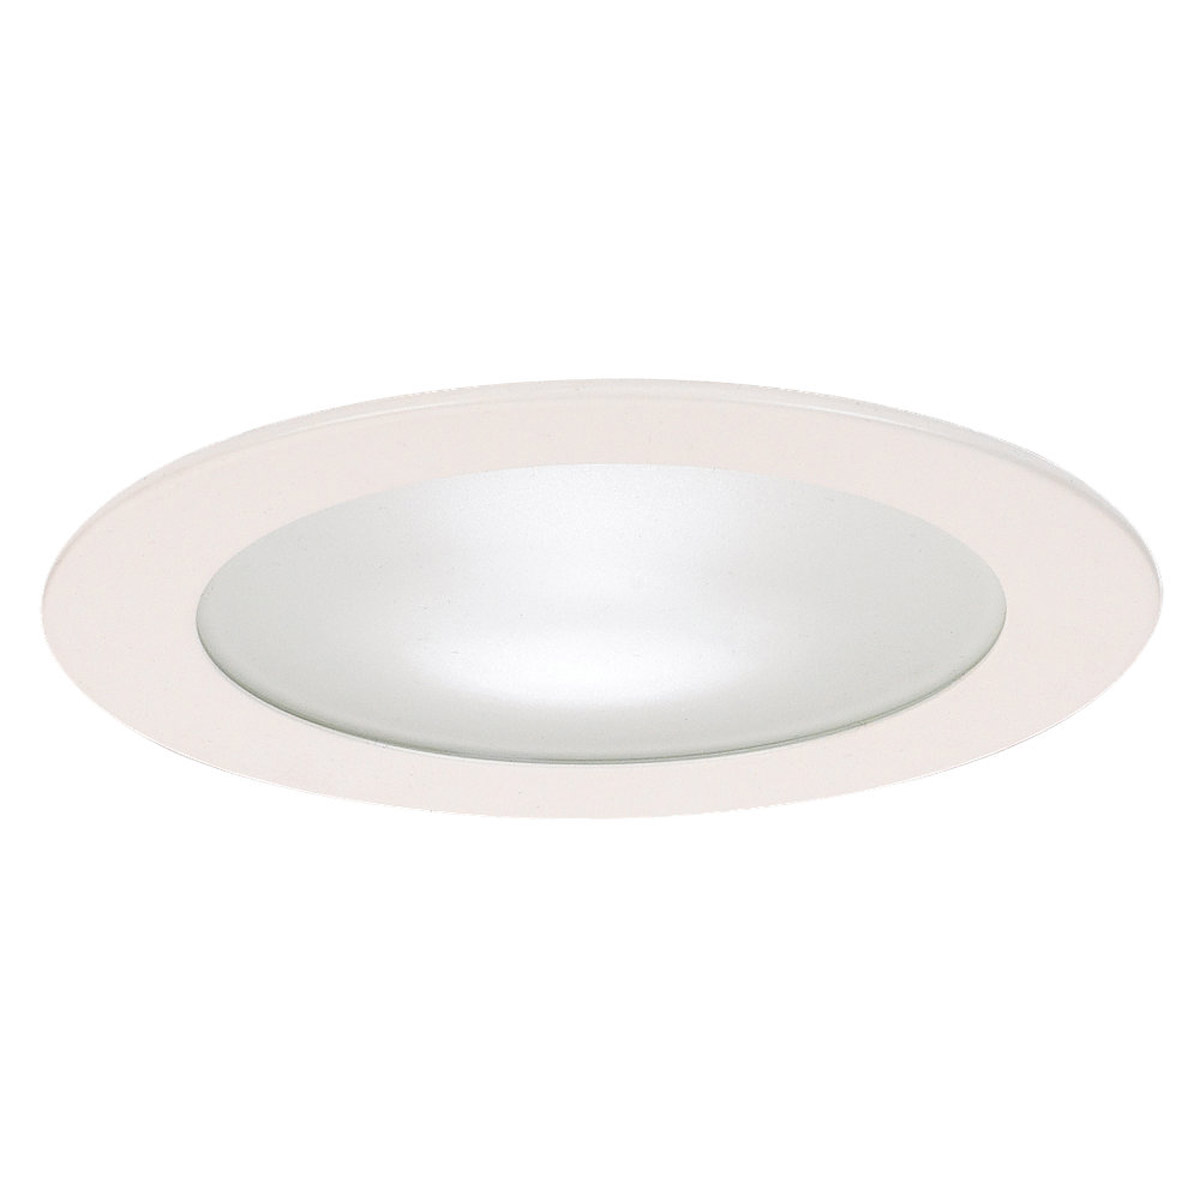 Sea Gull Lighting Signature Recessed Trim Only in White 12041AT-15